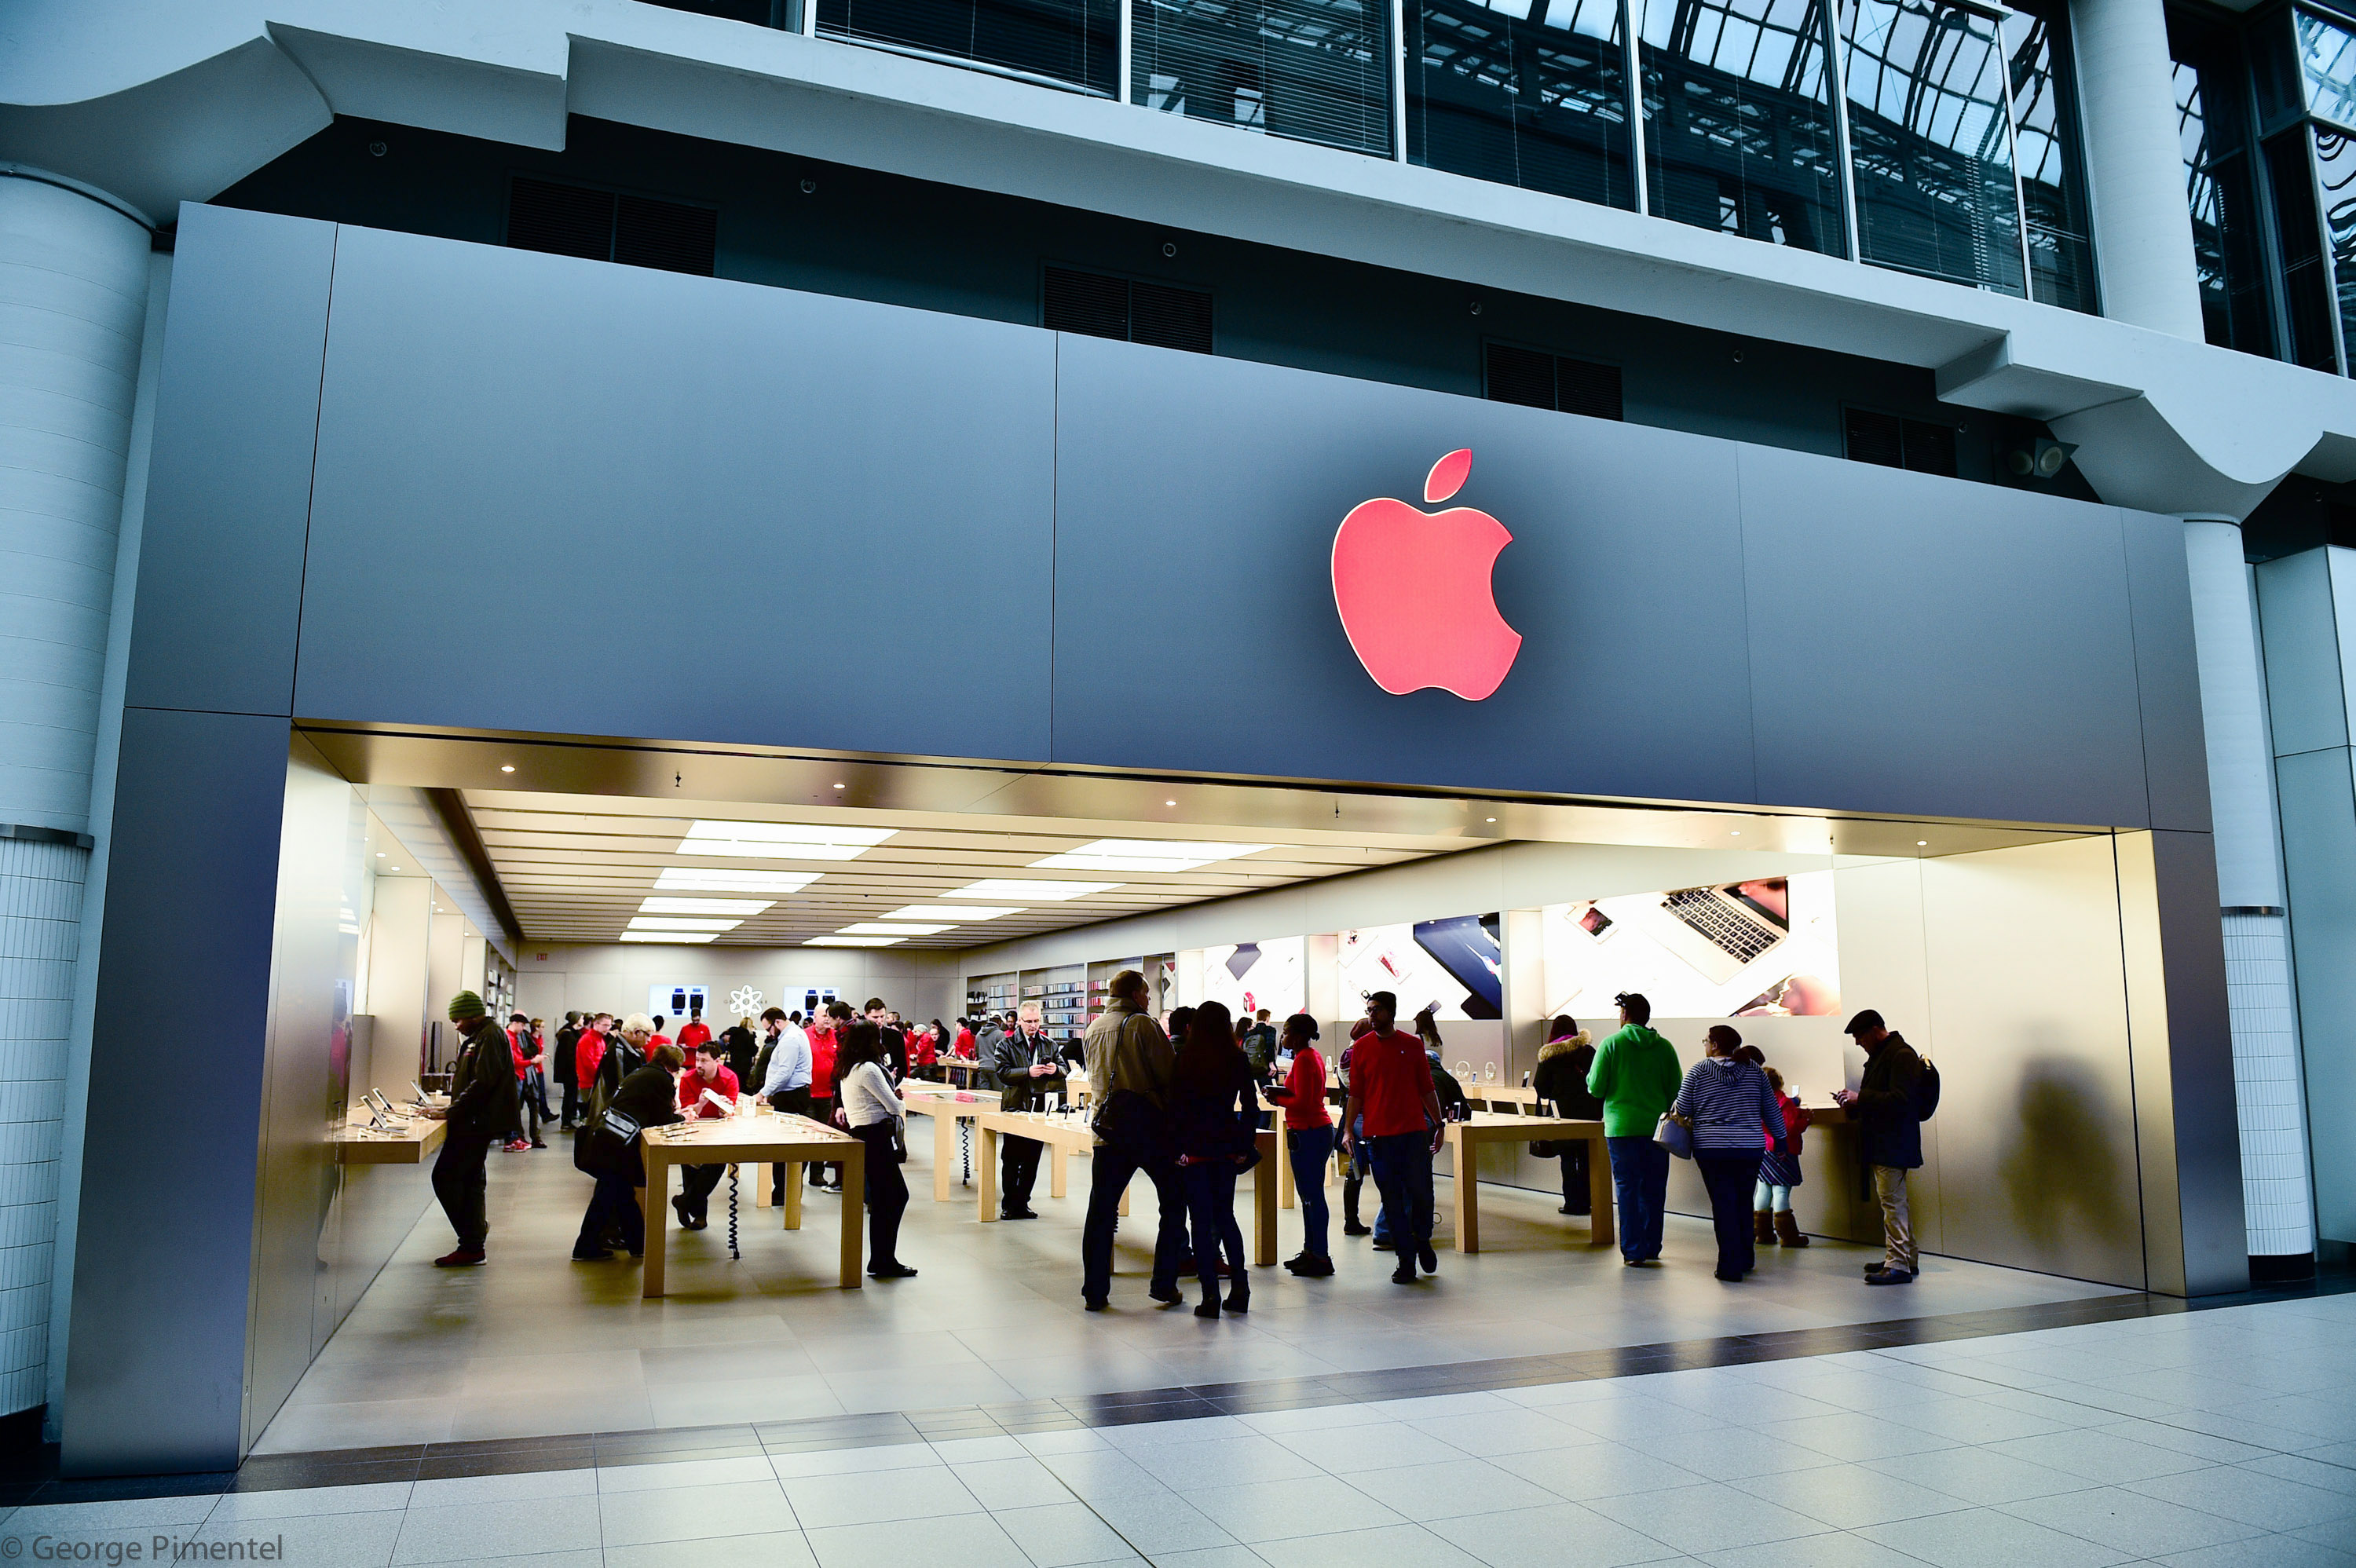 The Apple Store at Eaton Centre Shopping Centre on December 1, 2015 in Toronto, Canada.